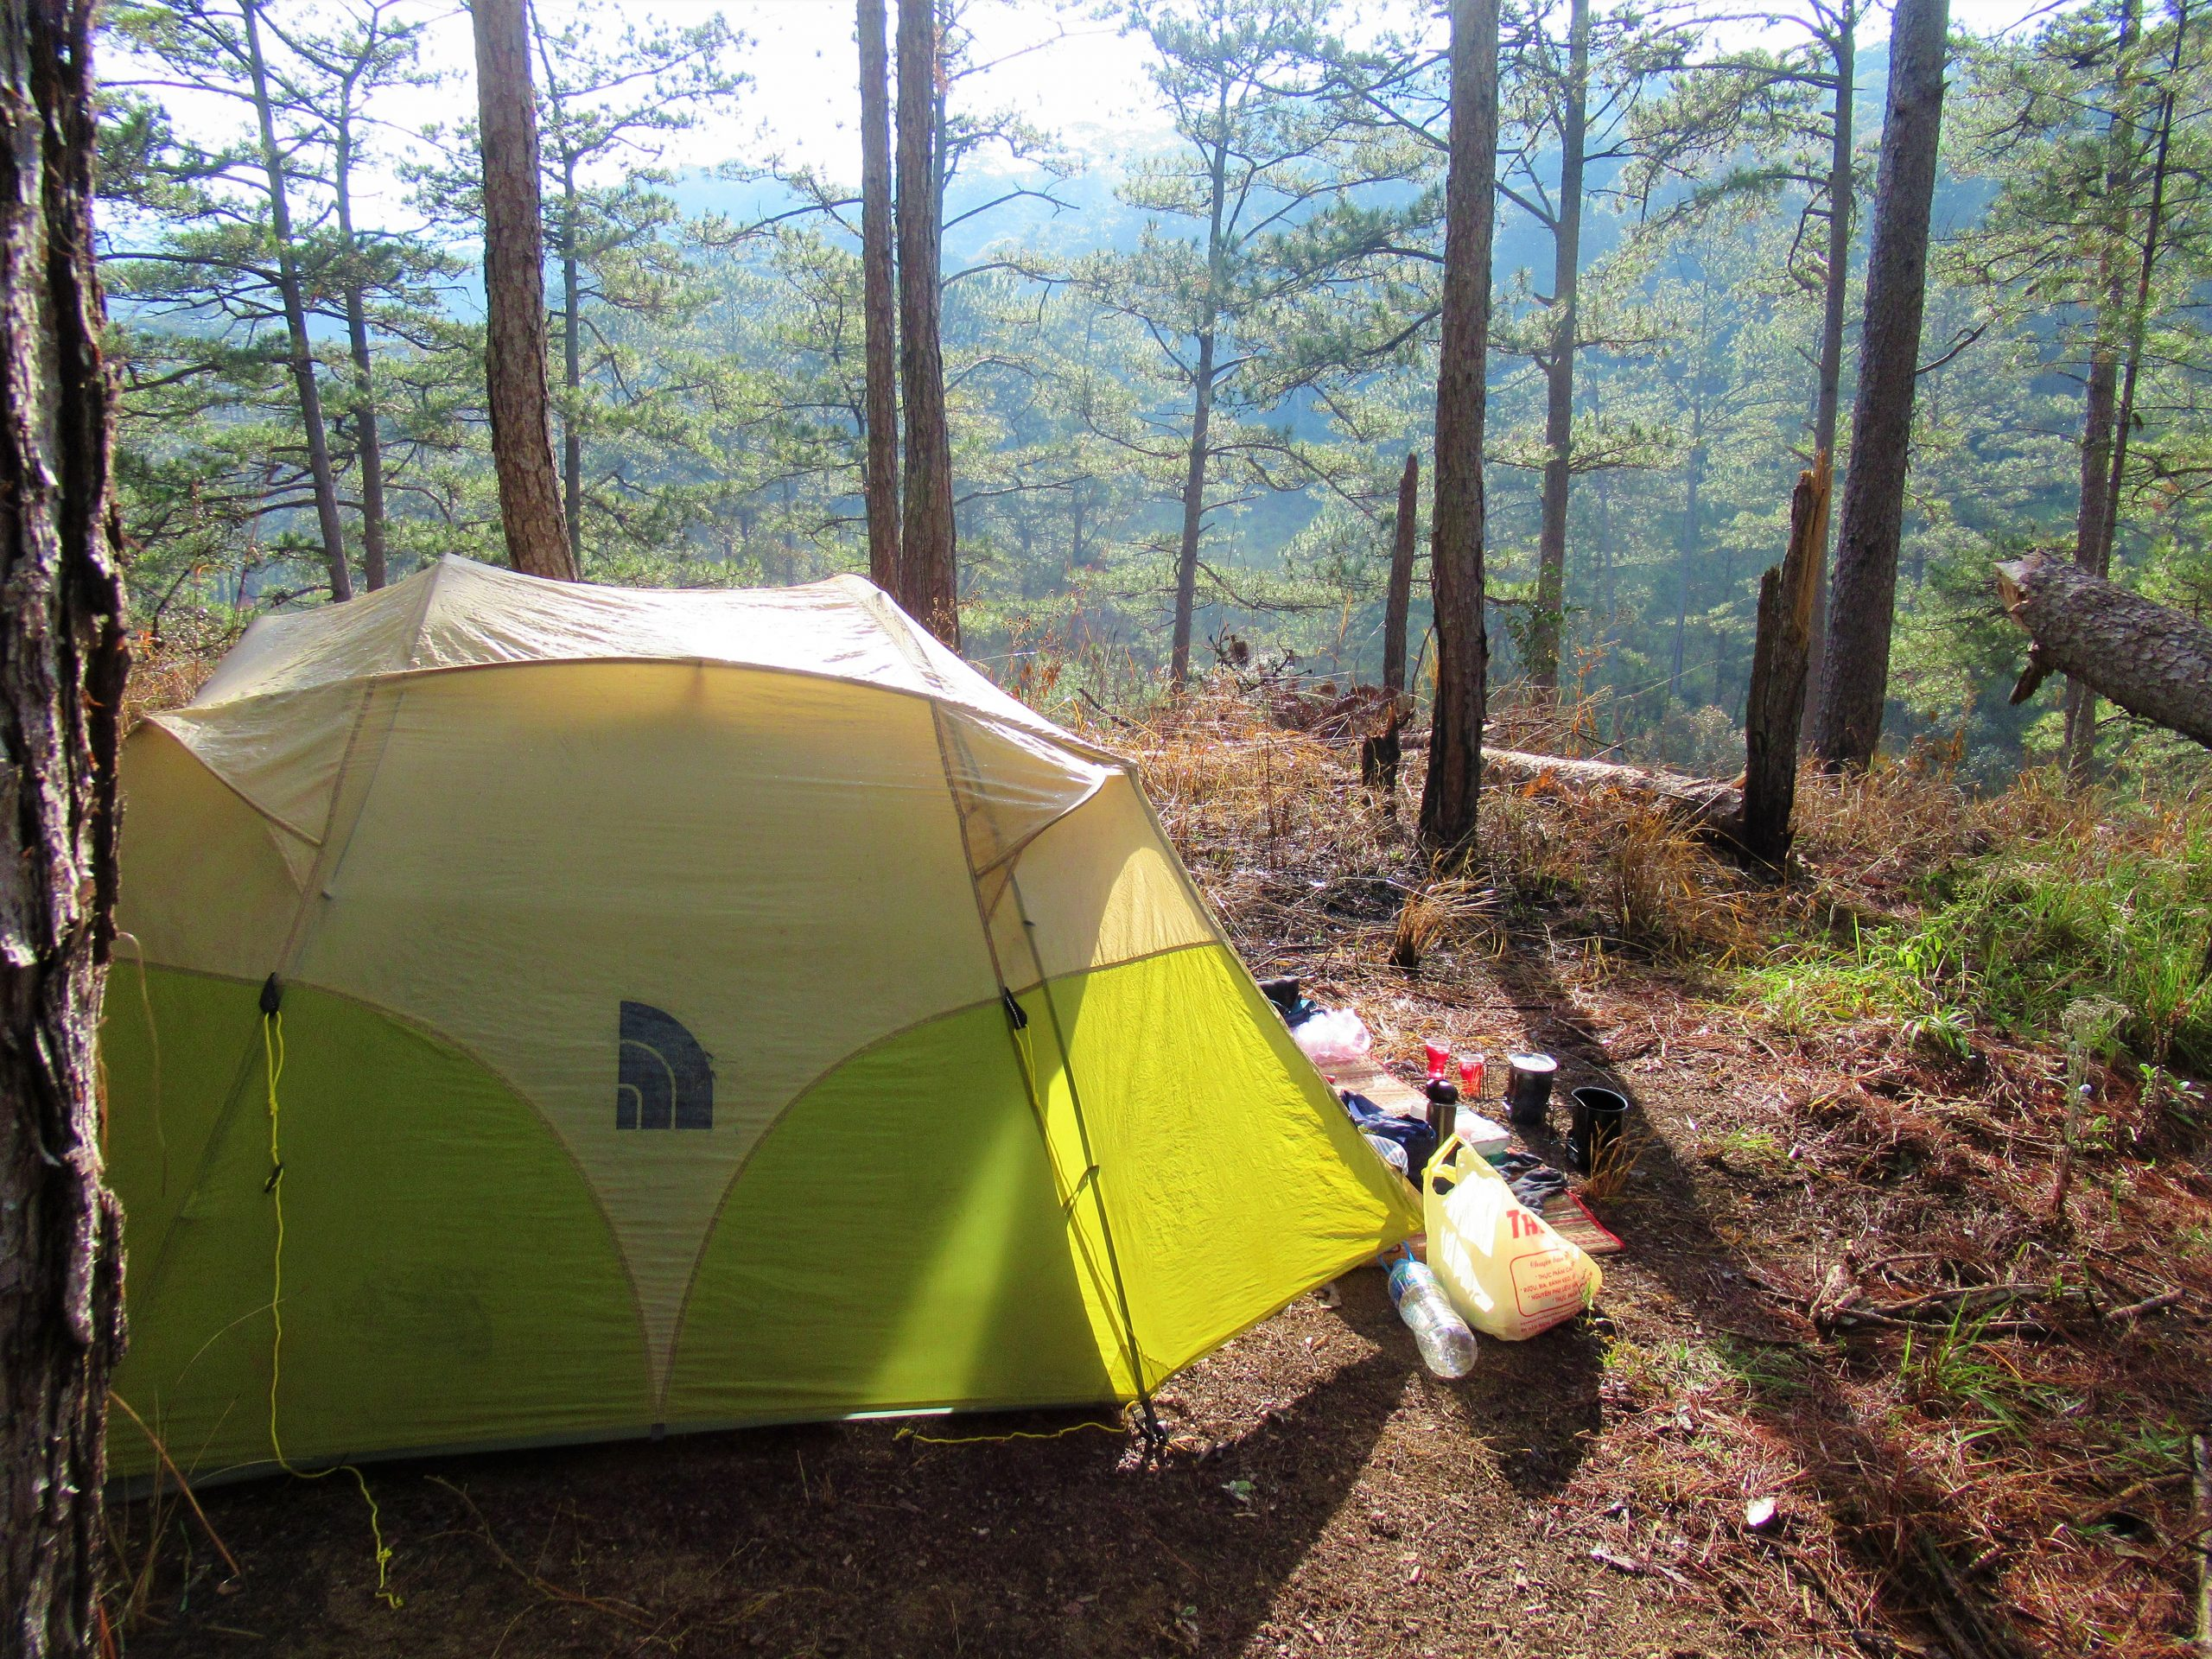 Camping in the pine forests near Da Nhim, Lam Dong Province, Vietnam